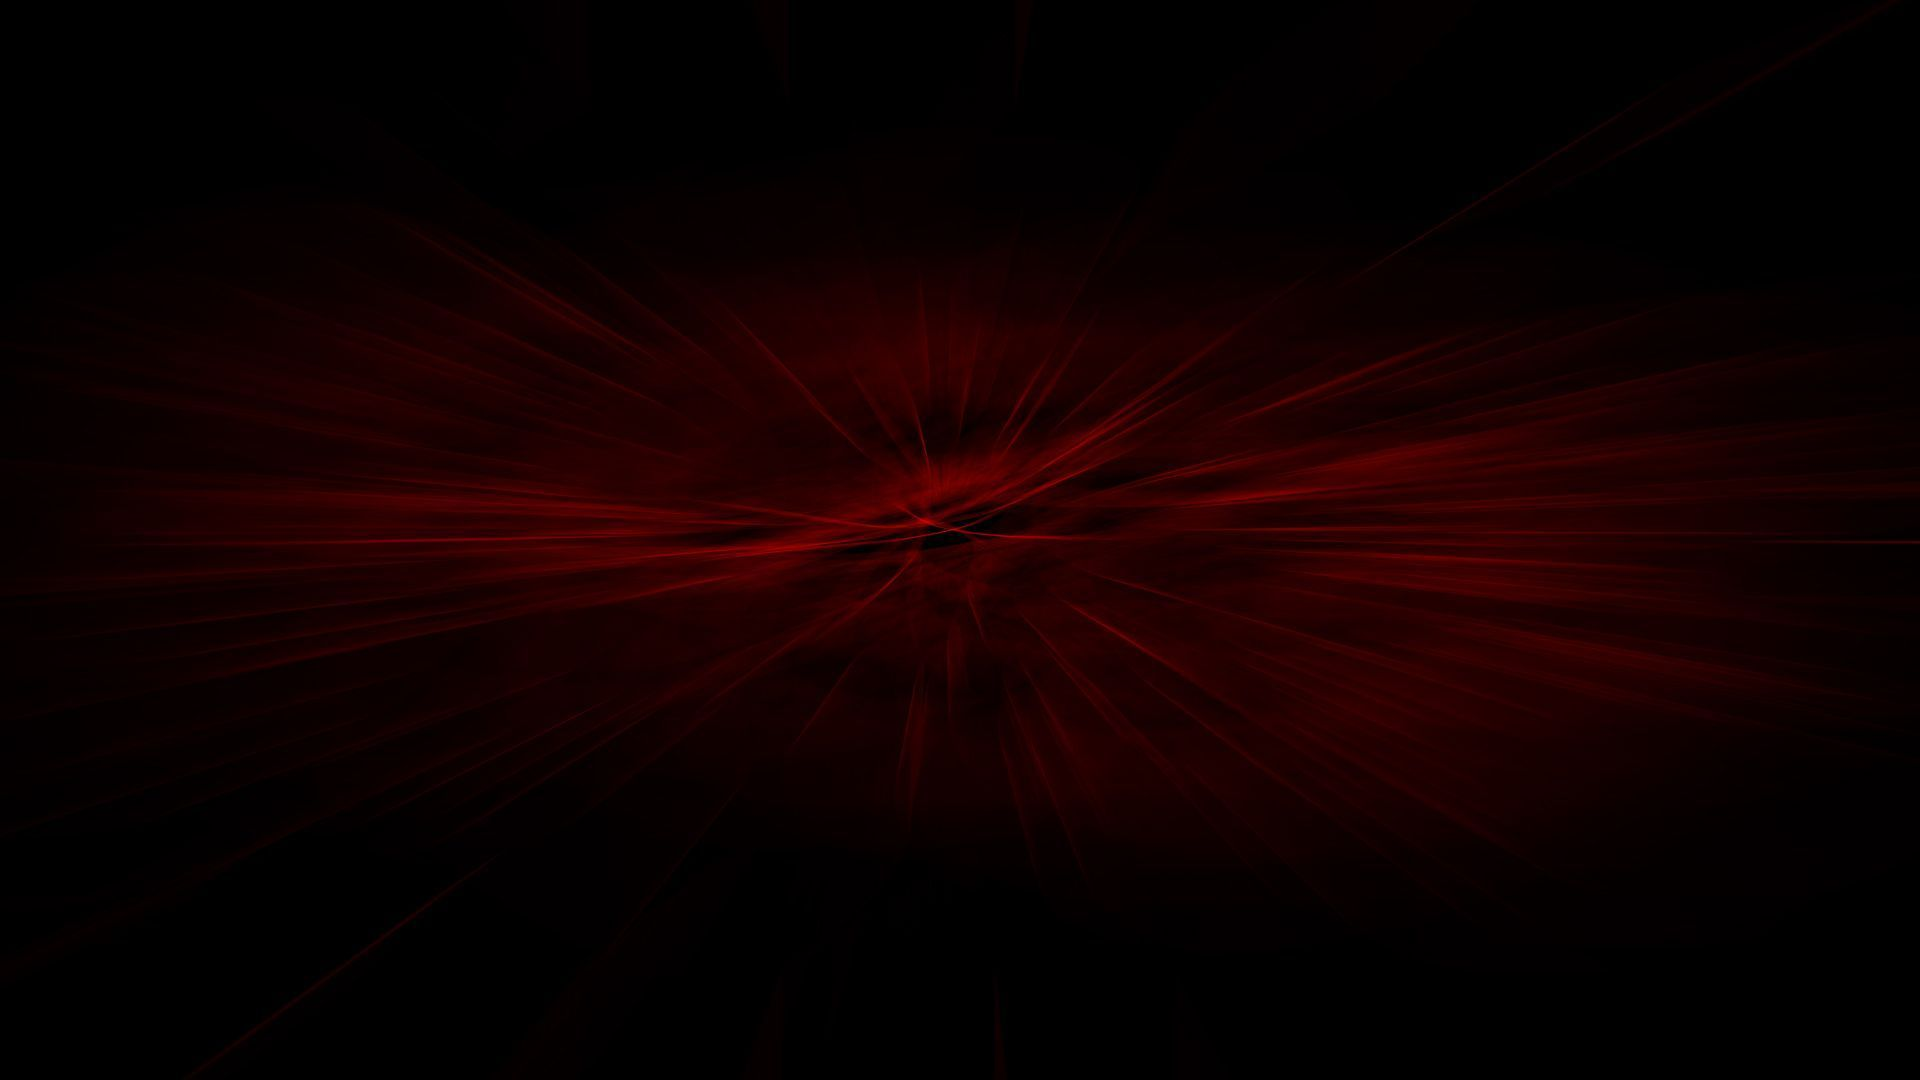 Black And Red >> Black And Red Abstract Wallpaper 11 1920x1080